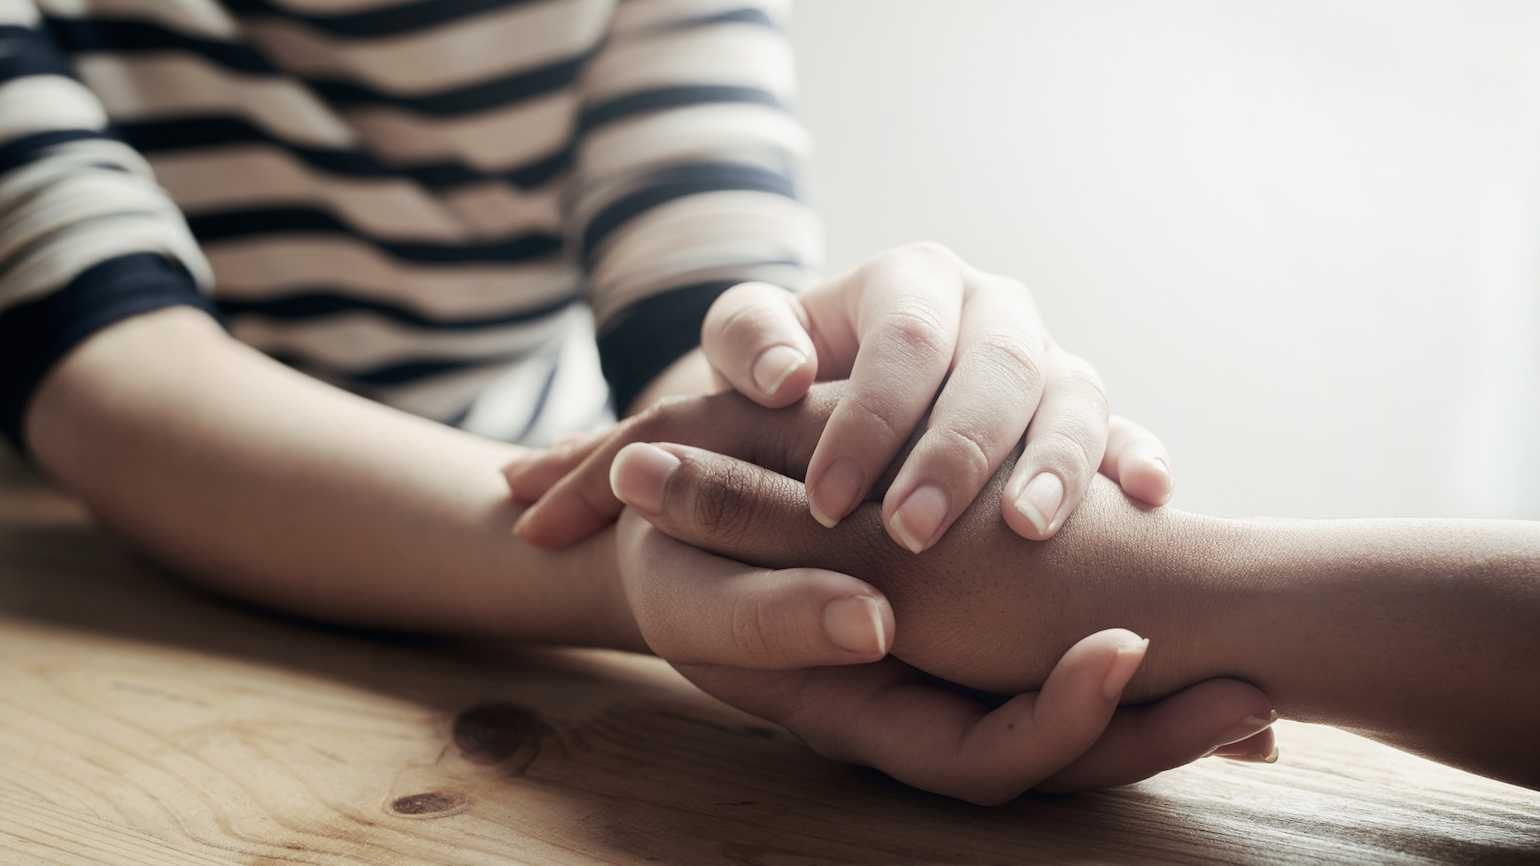 Comforting others in their grief